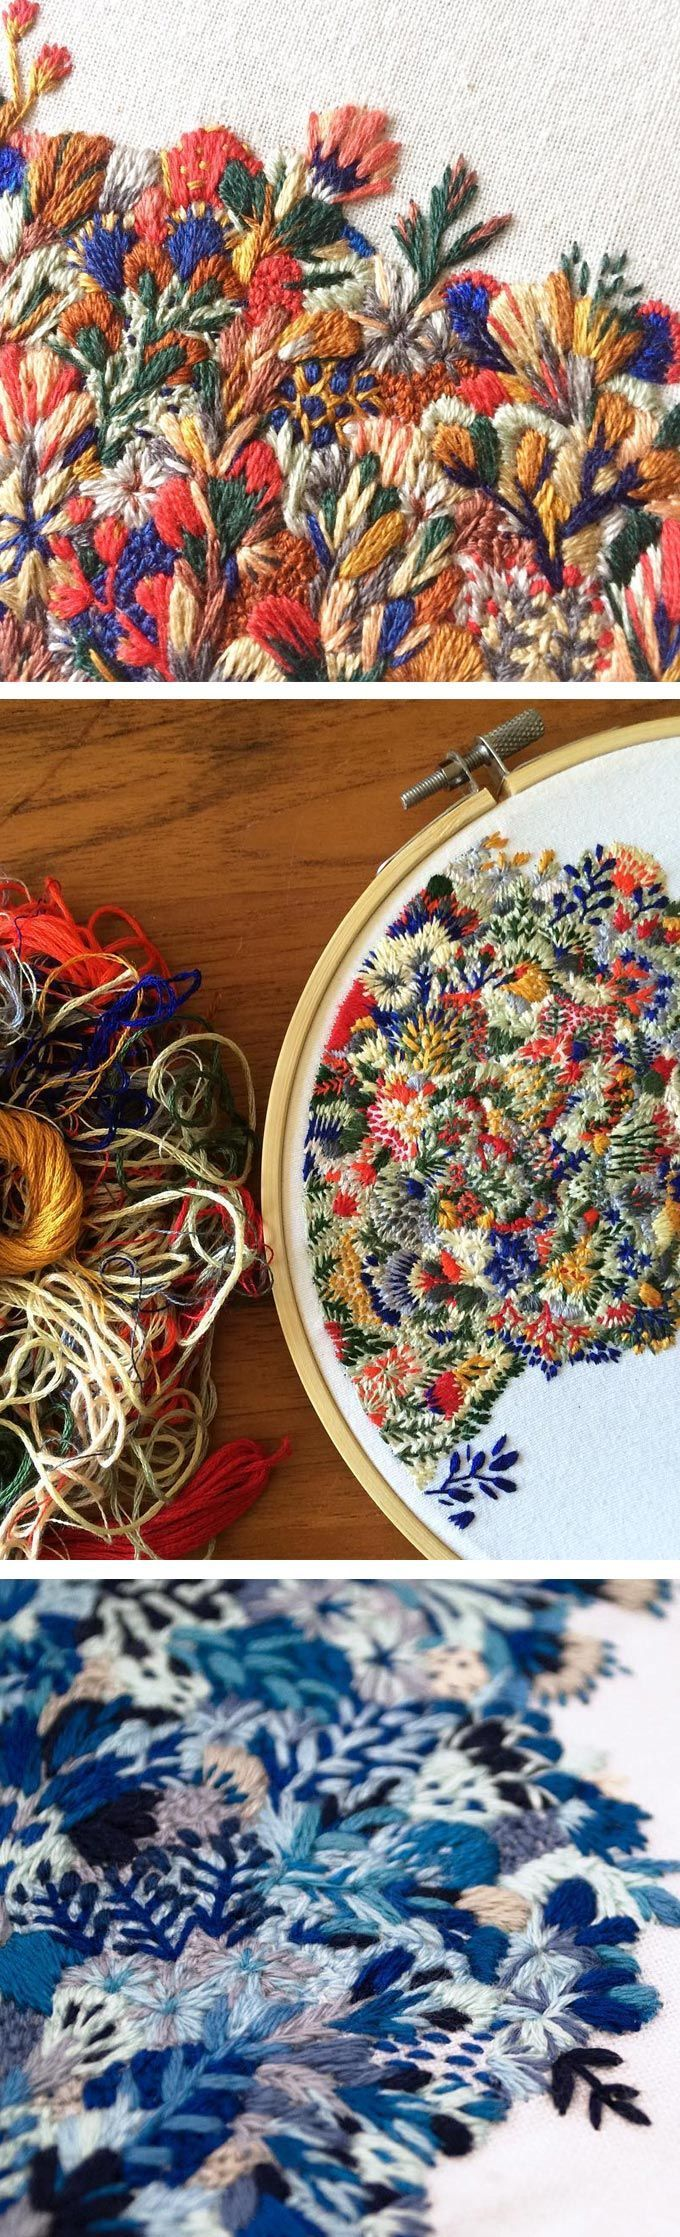 Embroidery by Slow Stitch Sophie   floral embroidery   hoop art   floral hoop art